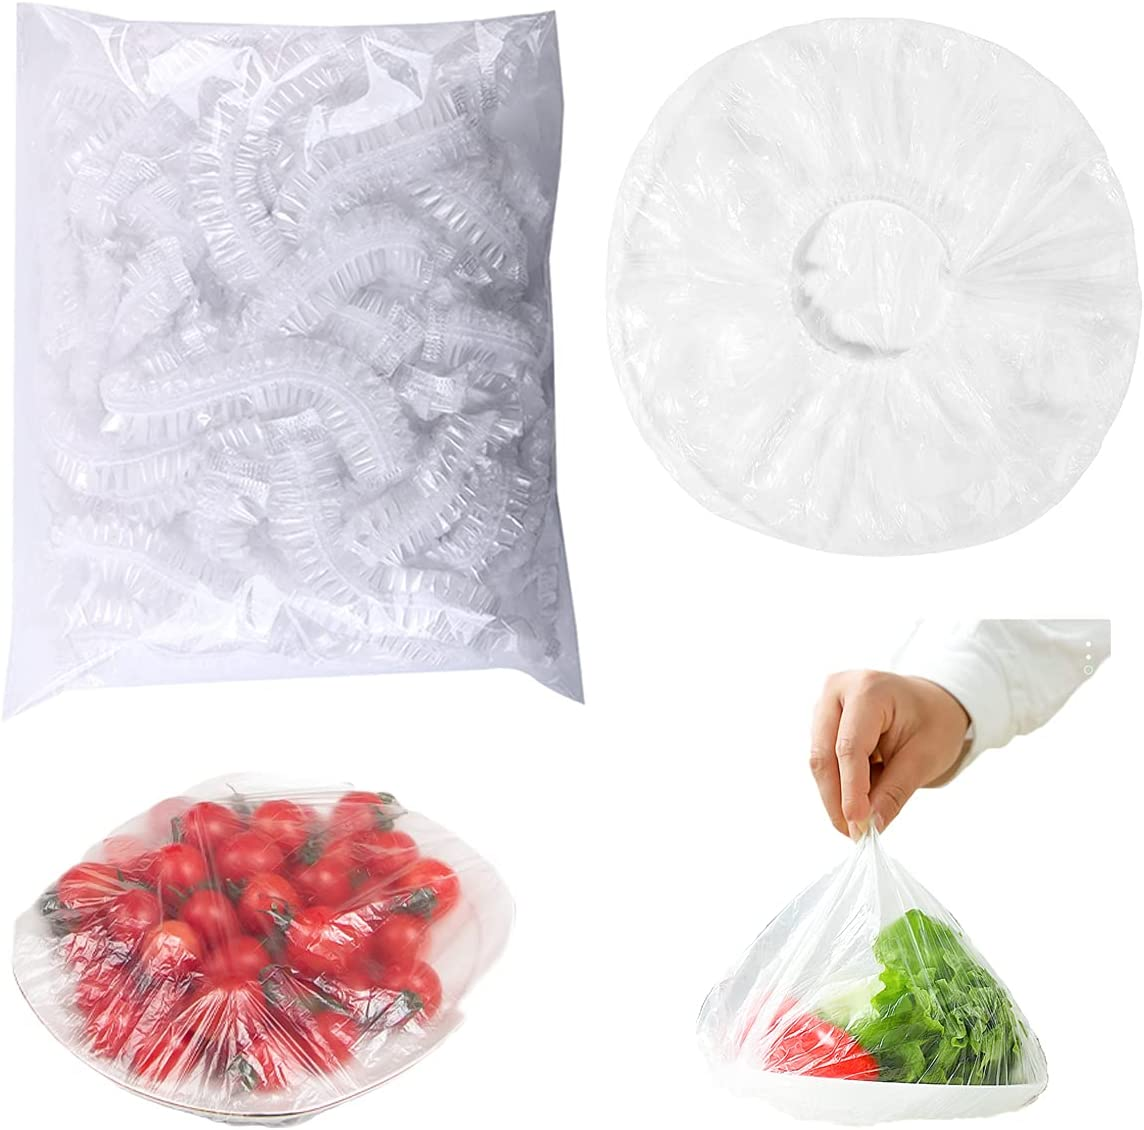 100Pcs Elastic Reusable Bowl Covers, Reusable Plastic Wrap Food Covers Outdoor Food Covers Food Wrap, Stretchable 360 Food Storage Containers Covers Clear Dish Plate Covers for Kitchen Outdoor Picnic